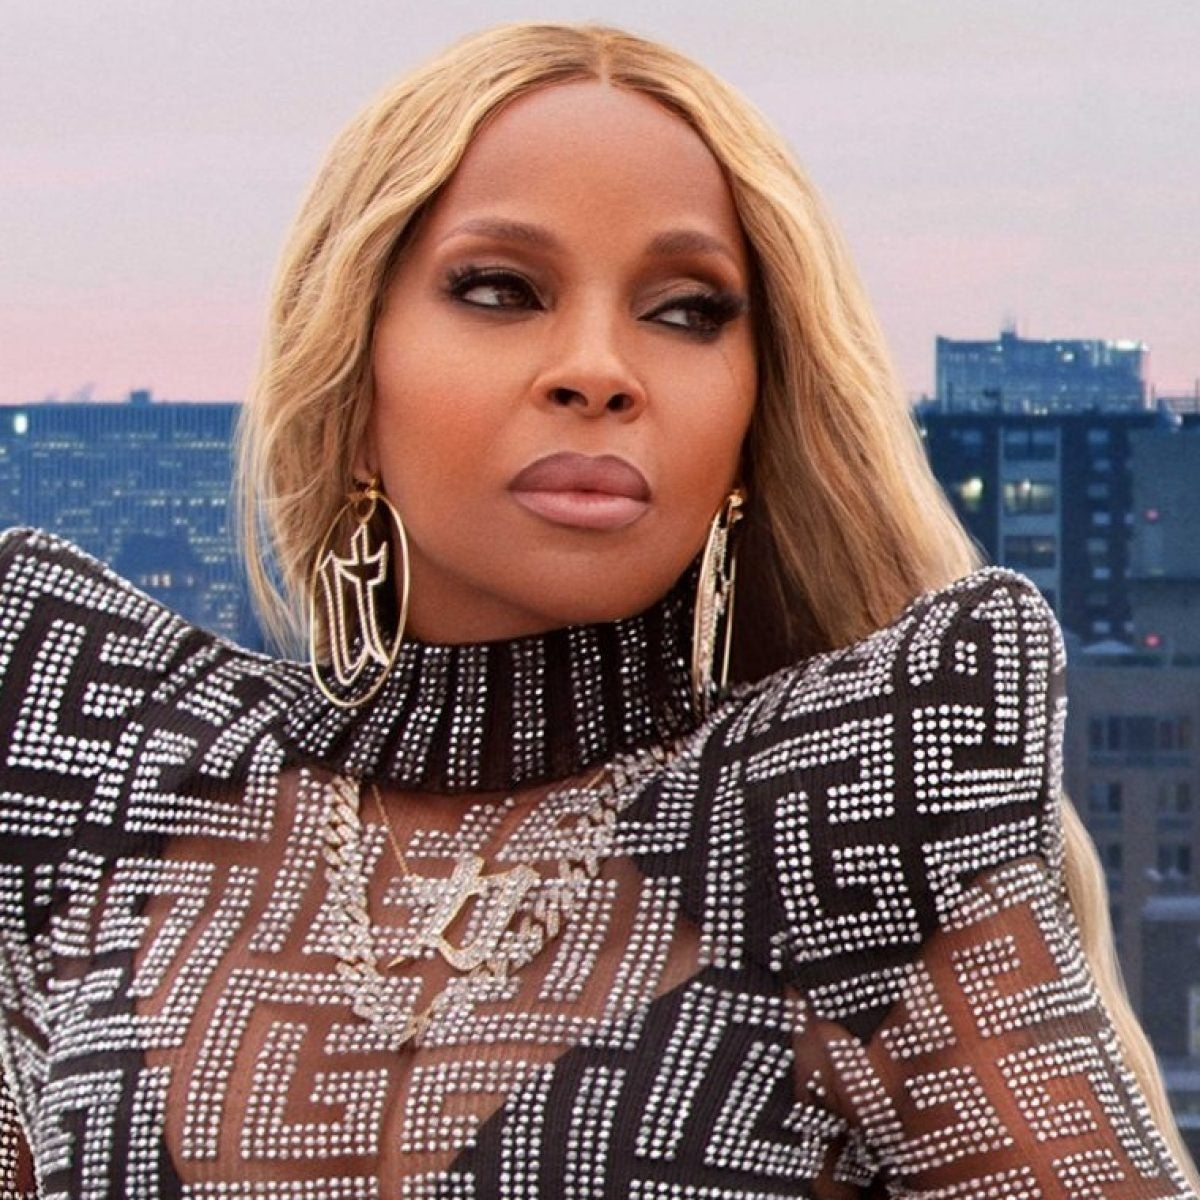 Watch: Official Trailer For 'Mary J. Blige's My Life' Documentary